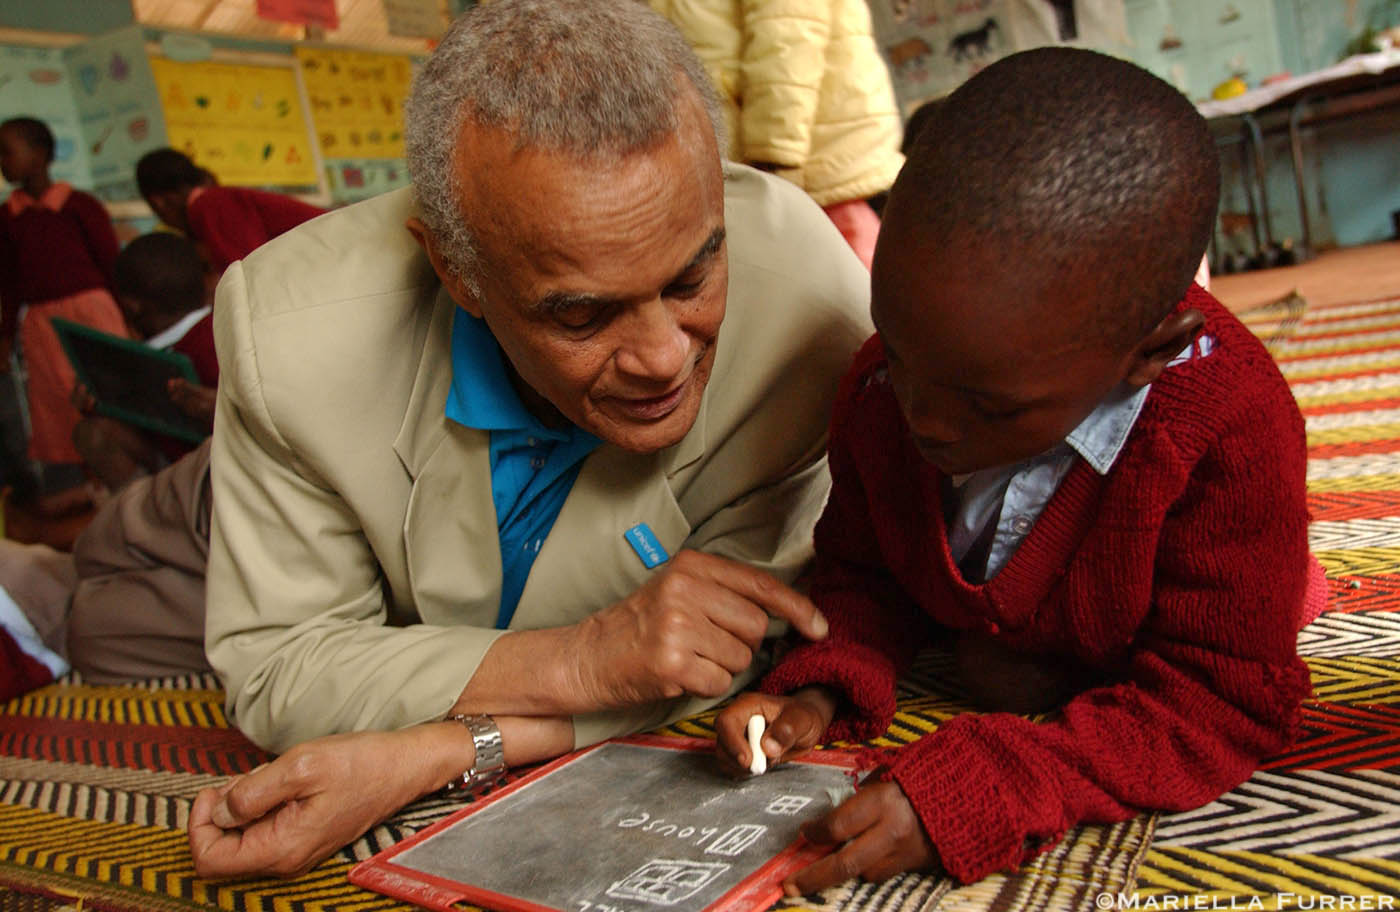 Unicef Goodwill Ambassador, Harry Belafonte, visits Kihumbuini Primary School in Kangemi, a poor neighbourhood in Nairobi.